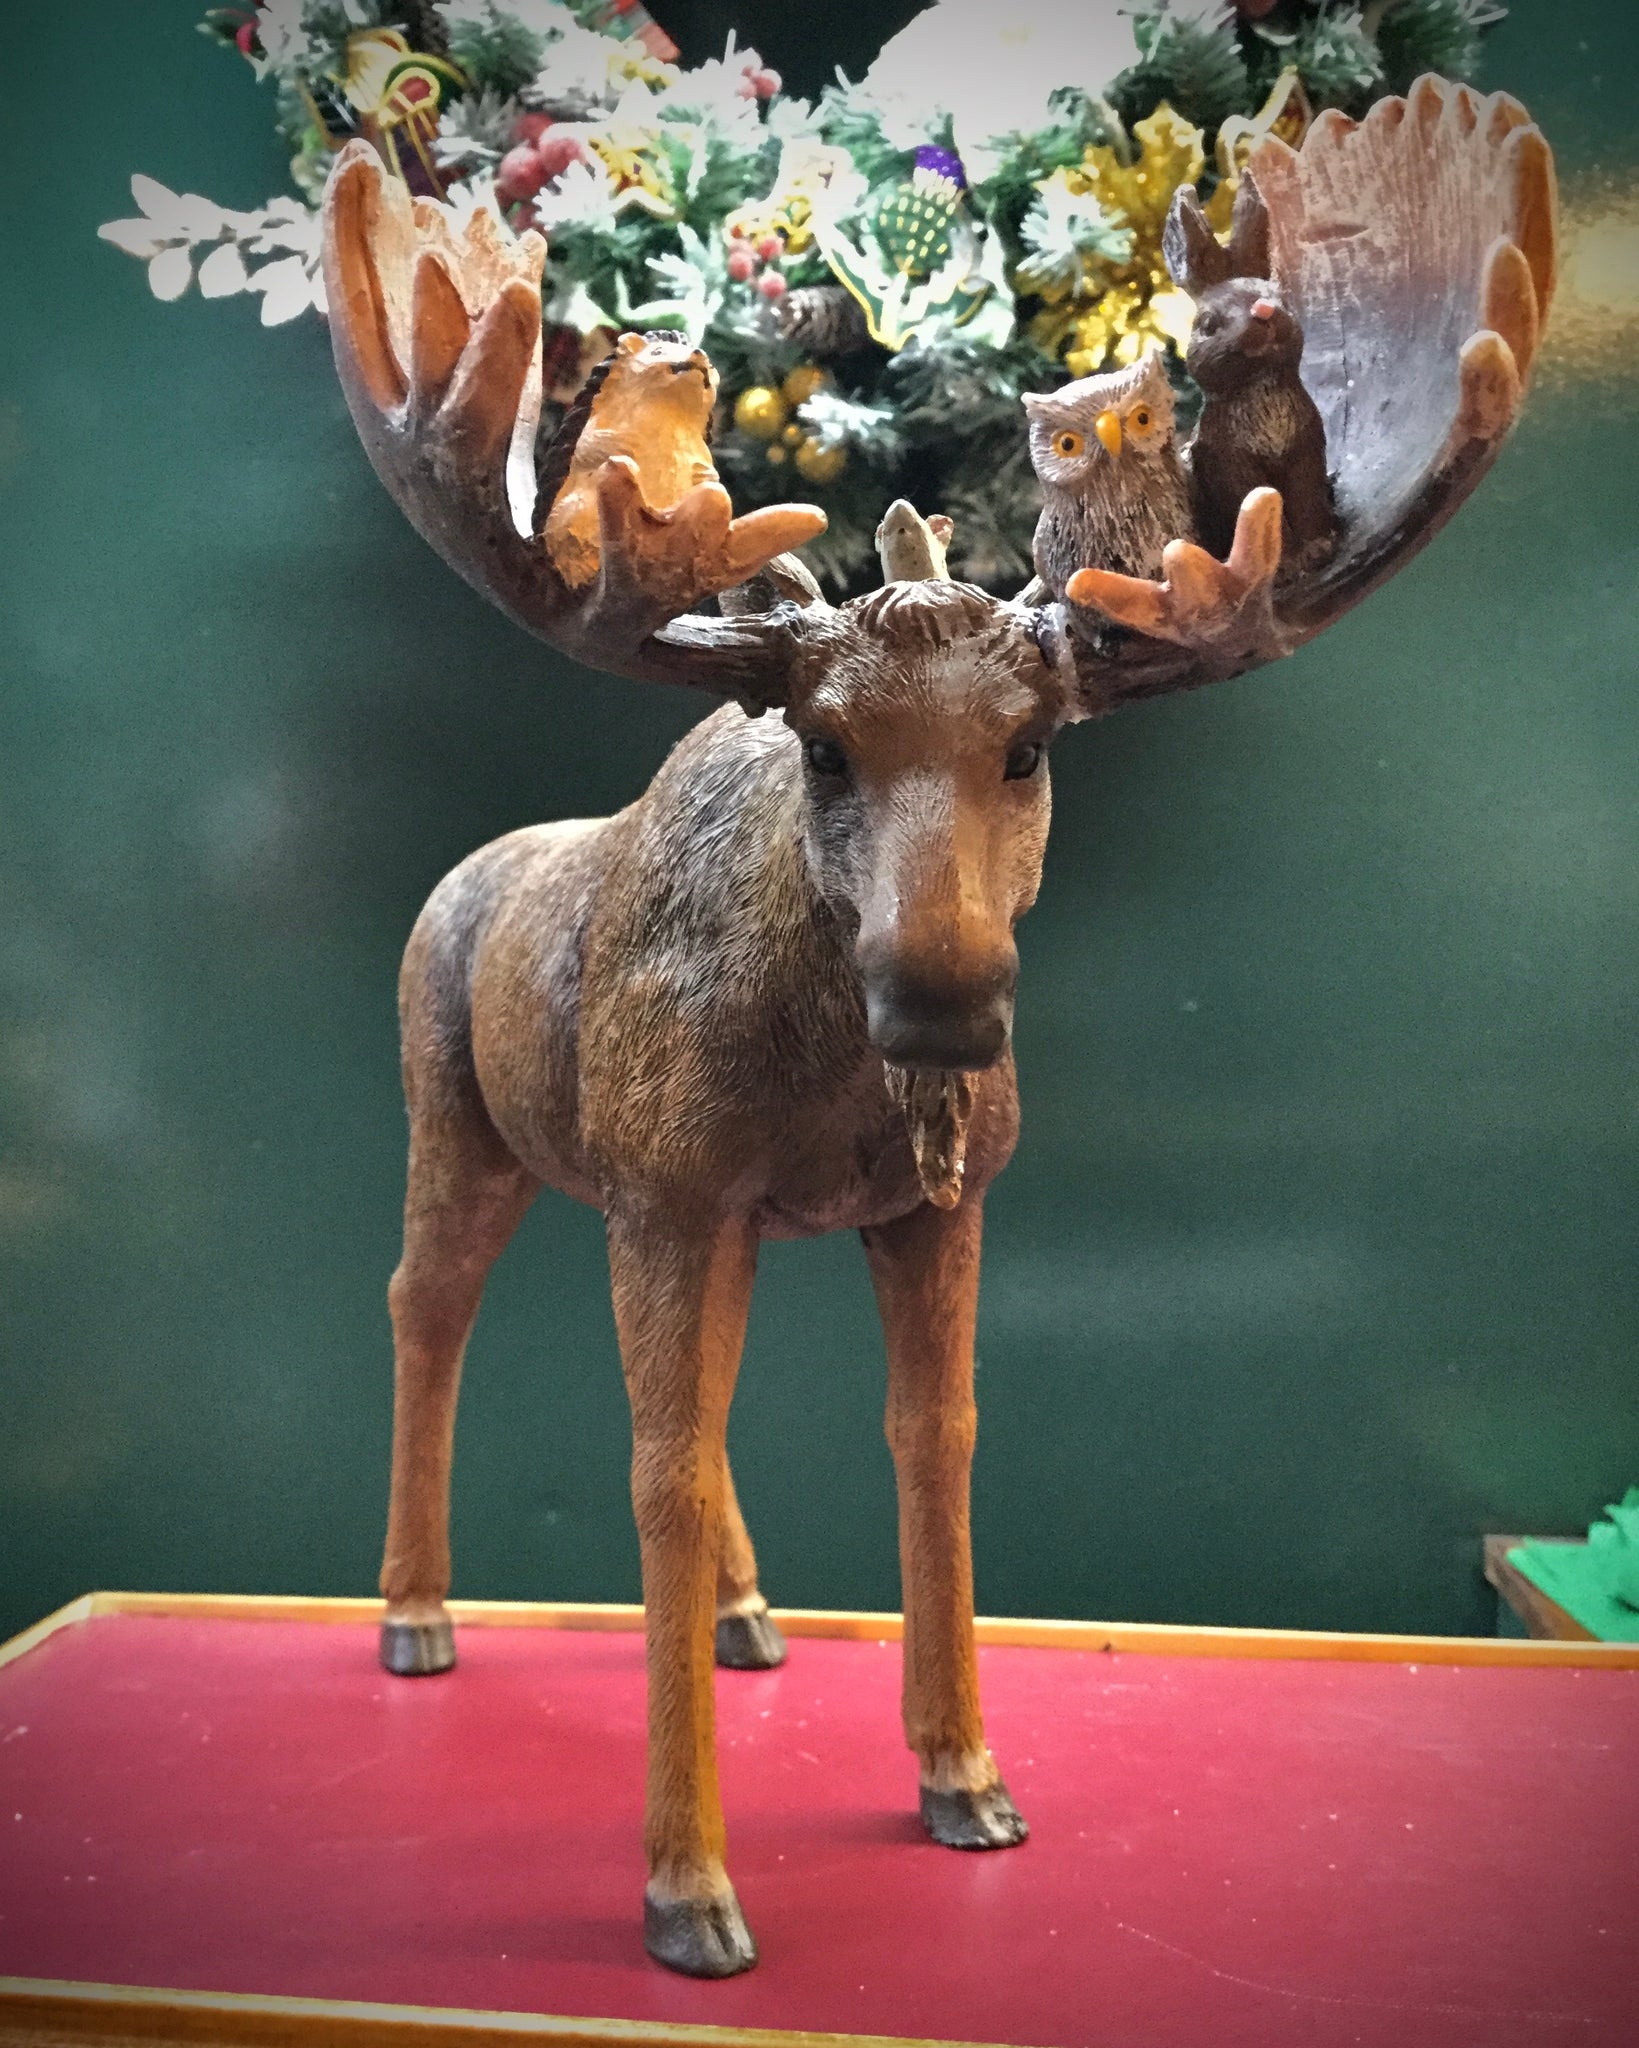 Moose with woodland animals